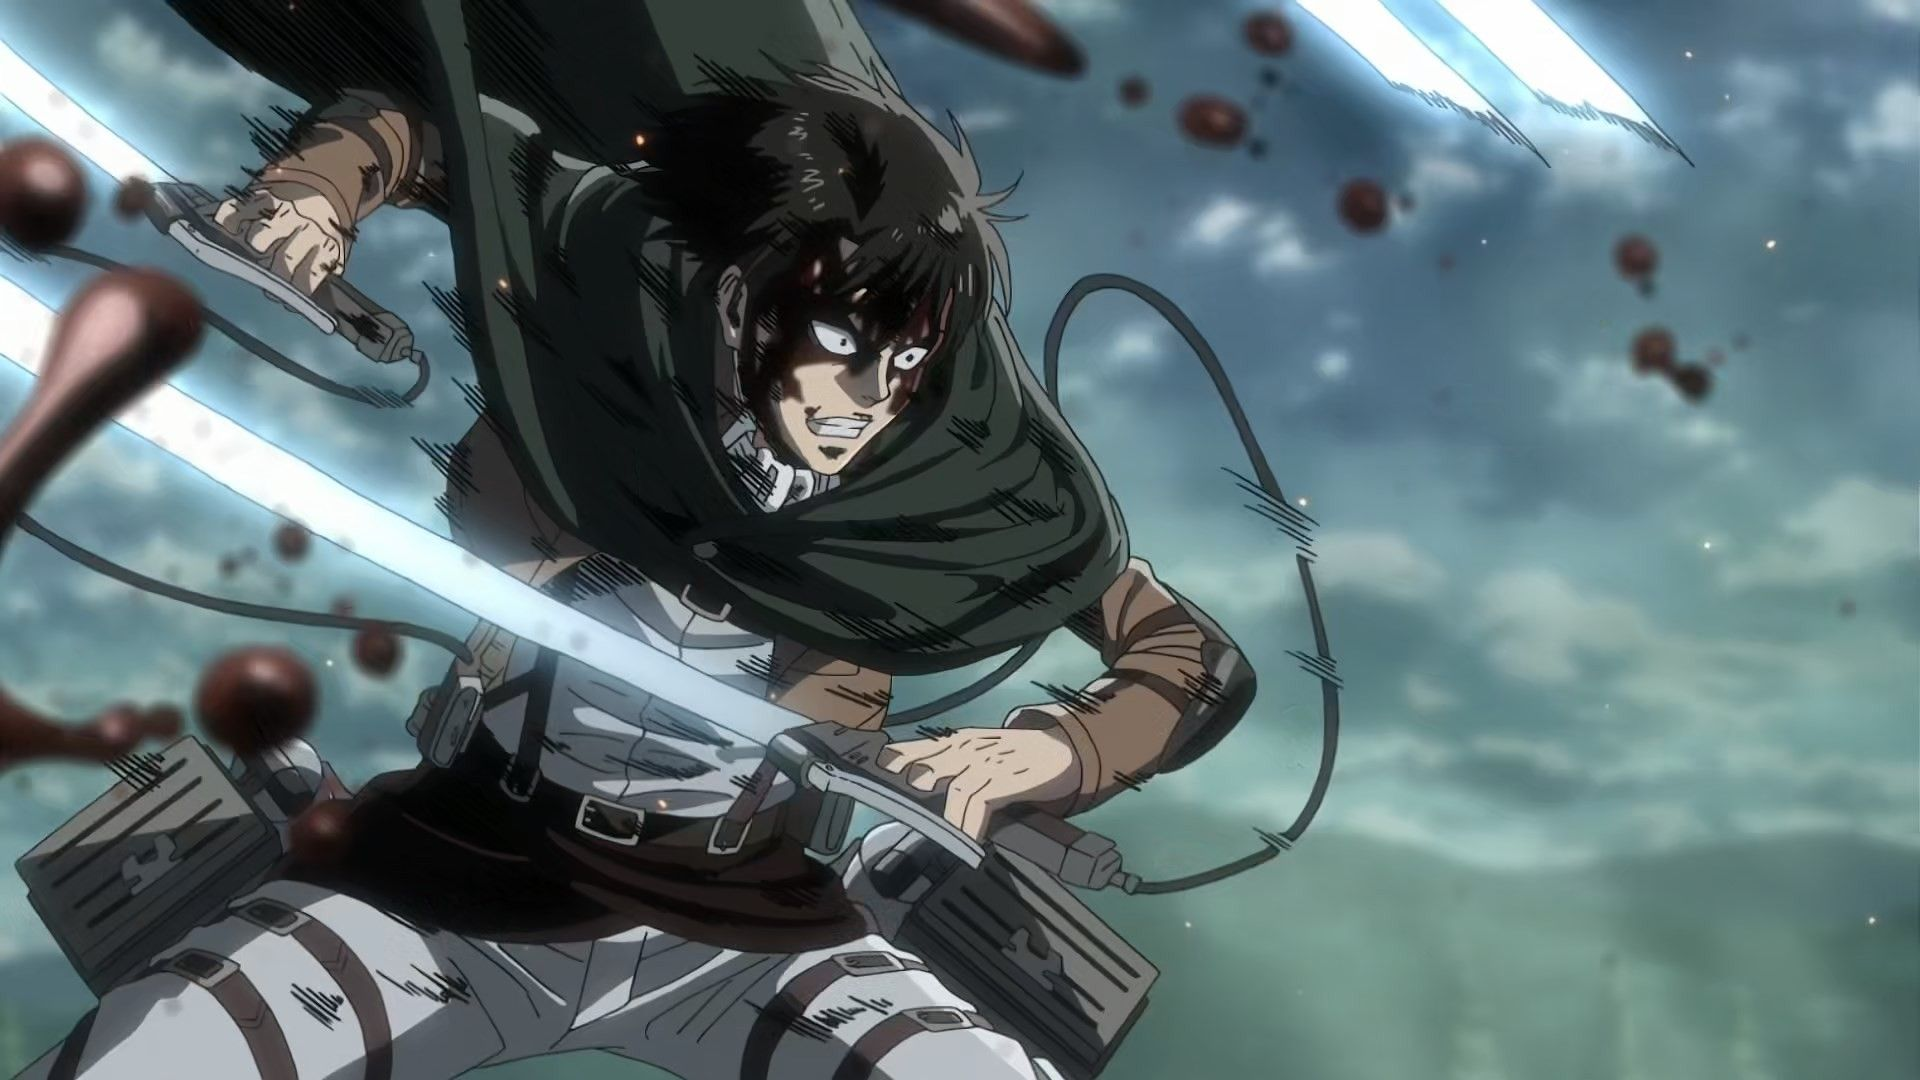 Pin on Aot screenshots